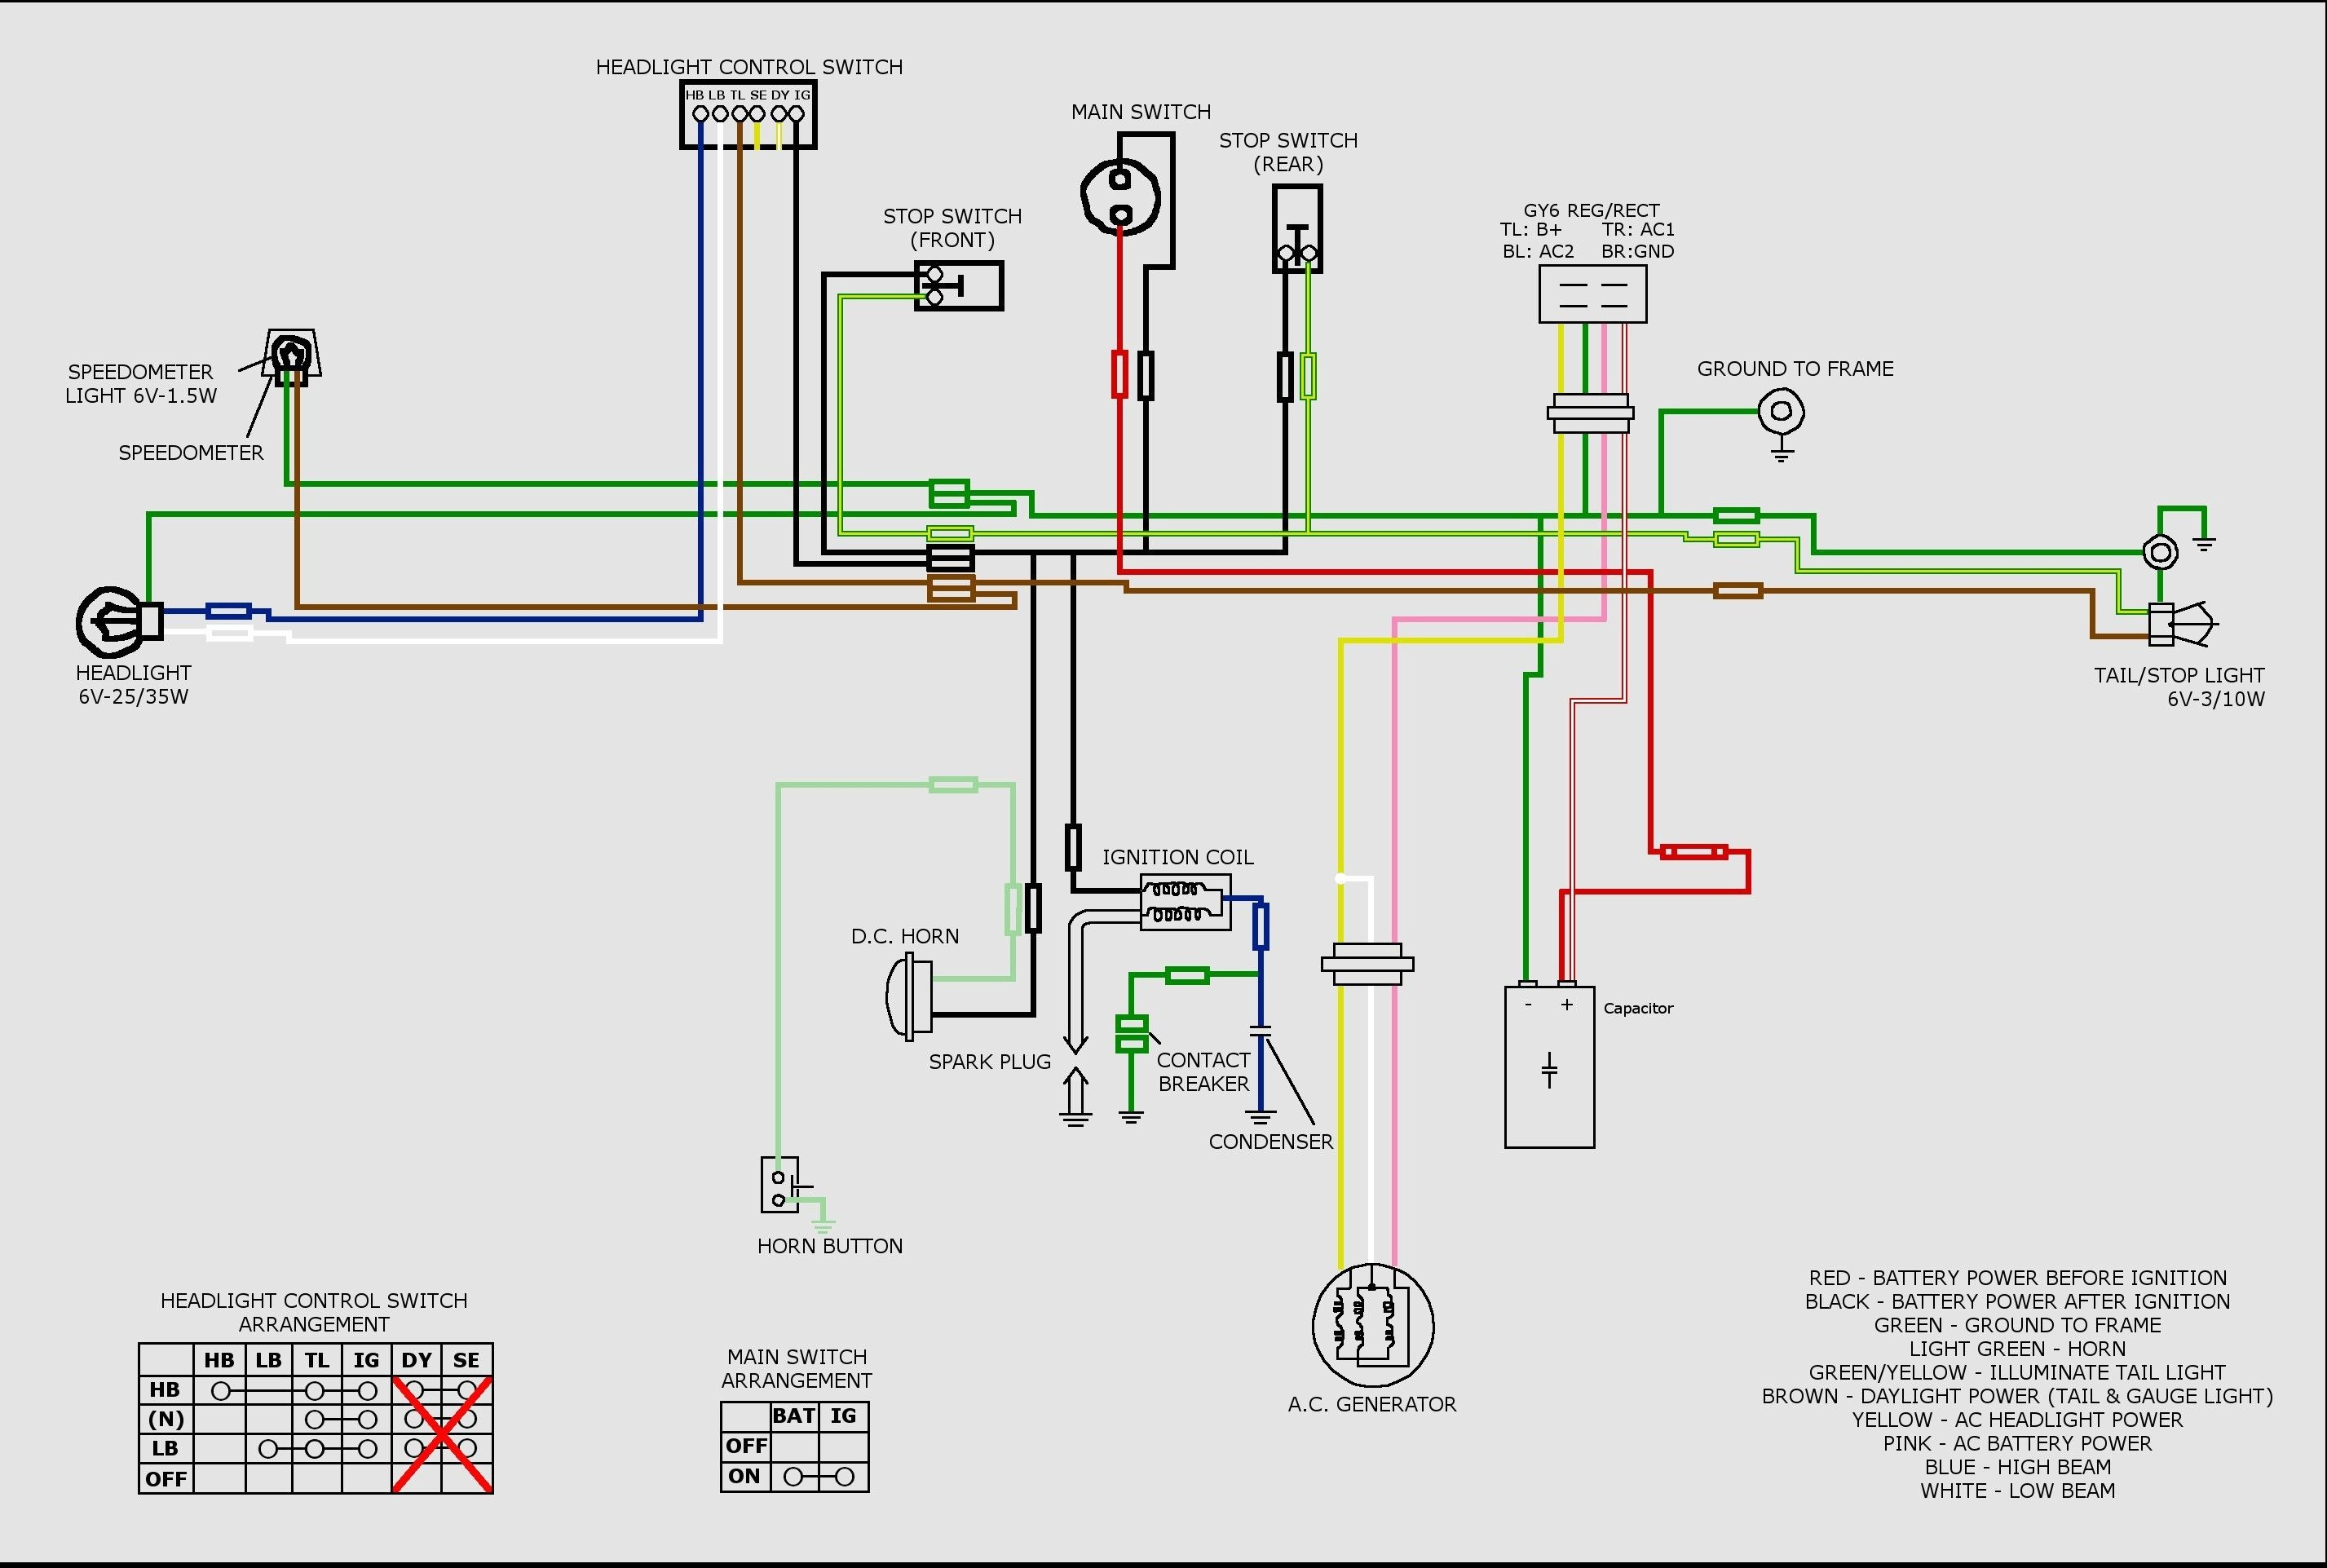 150cc gy6 scooter wire harness diagram 150cc scooter wiring diagram | free wiring diagram